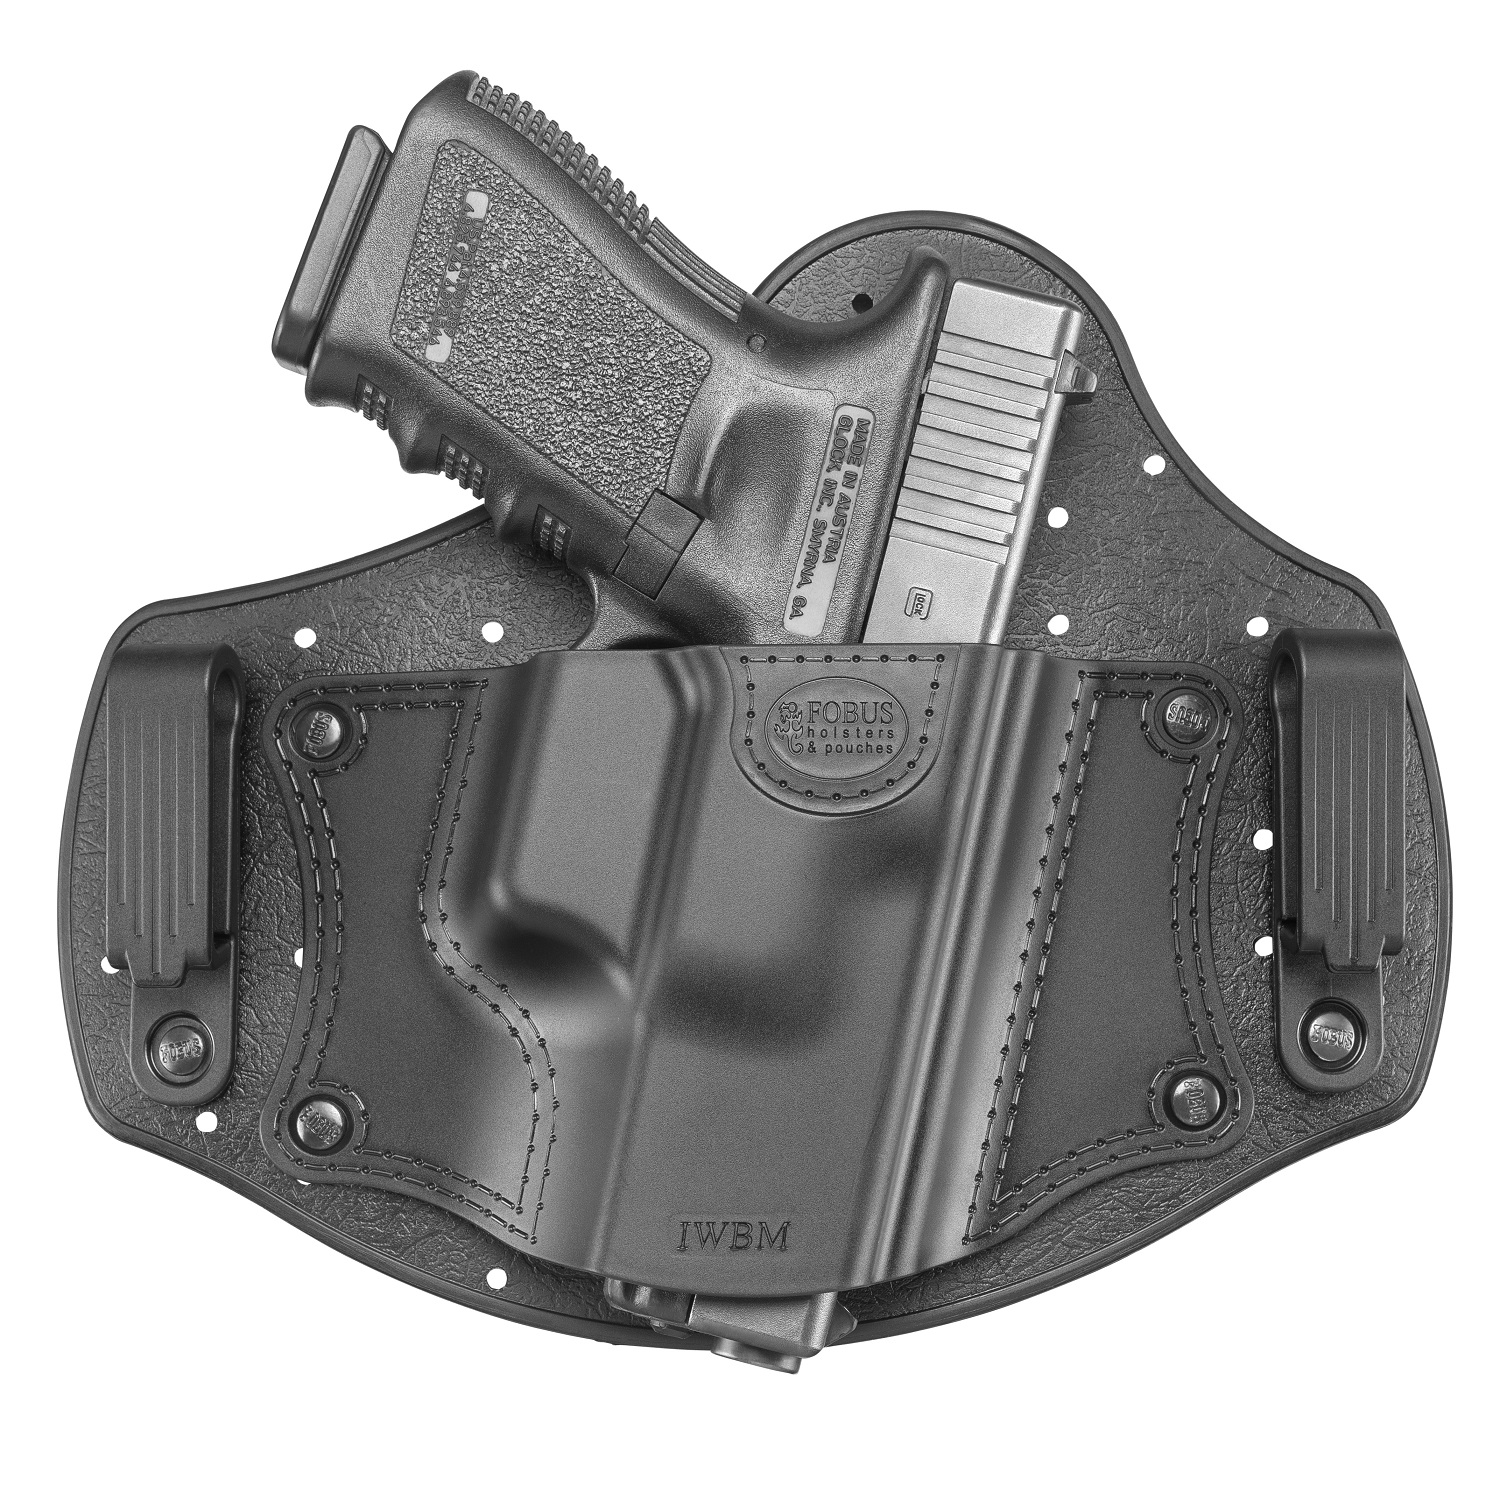 Click here to buy Fobus Universal Medium Size Inside Waistband Holster SKU: IWBM with Elite Tactical Cloth by Fobus.